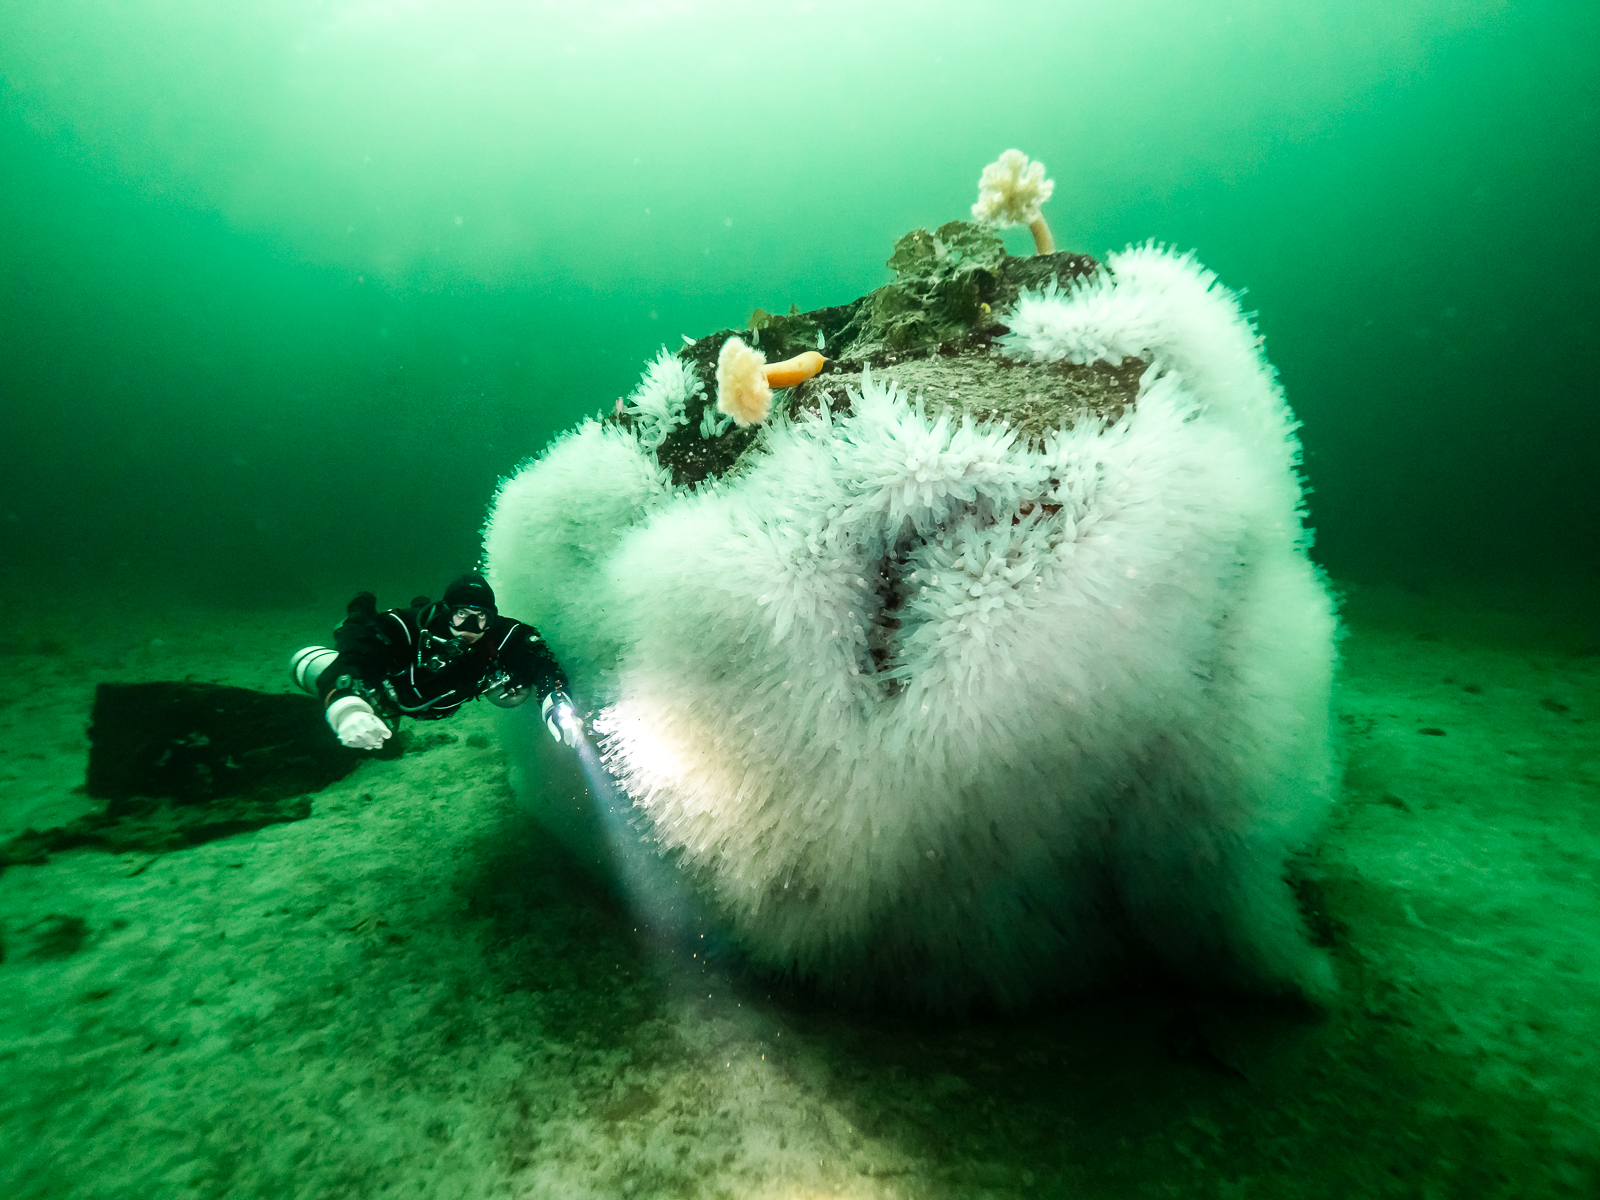 The Pacific Transparent Sea Squirt (Ciona savignyi) is thought to be an invasive species on the Northwest Pacific coast. A colony has covered a large boulder between shore and islet at Tuwanek. Sechelt Inlets Marine Provincial Park.